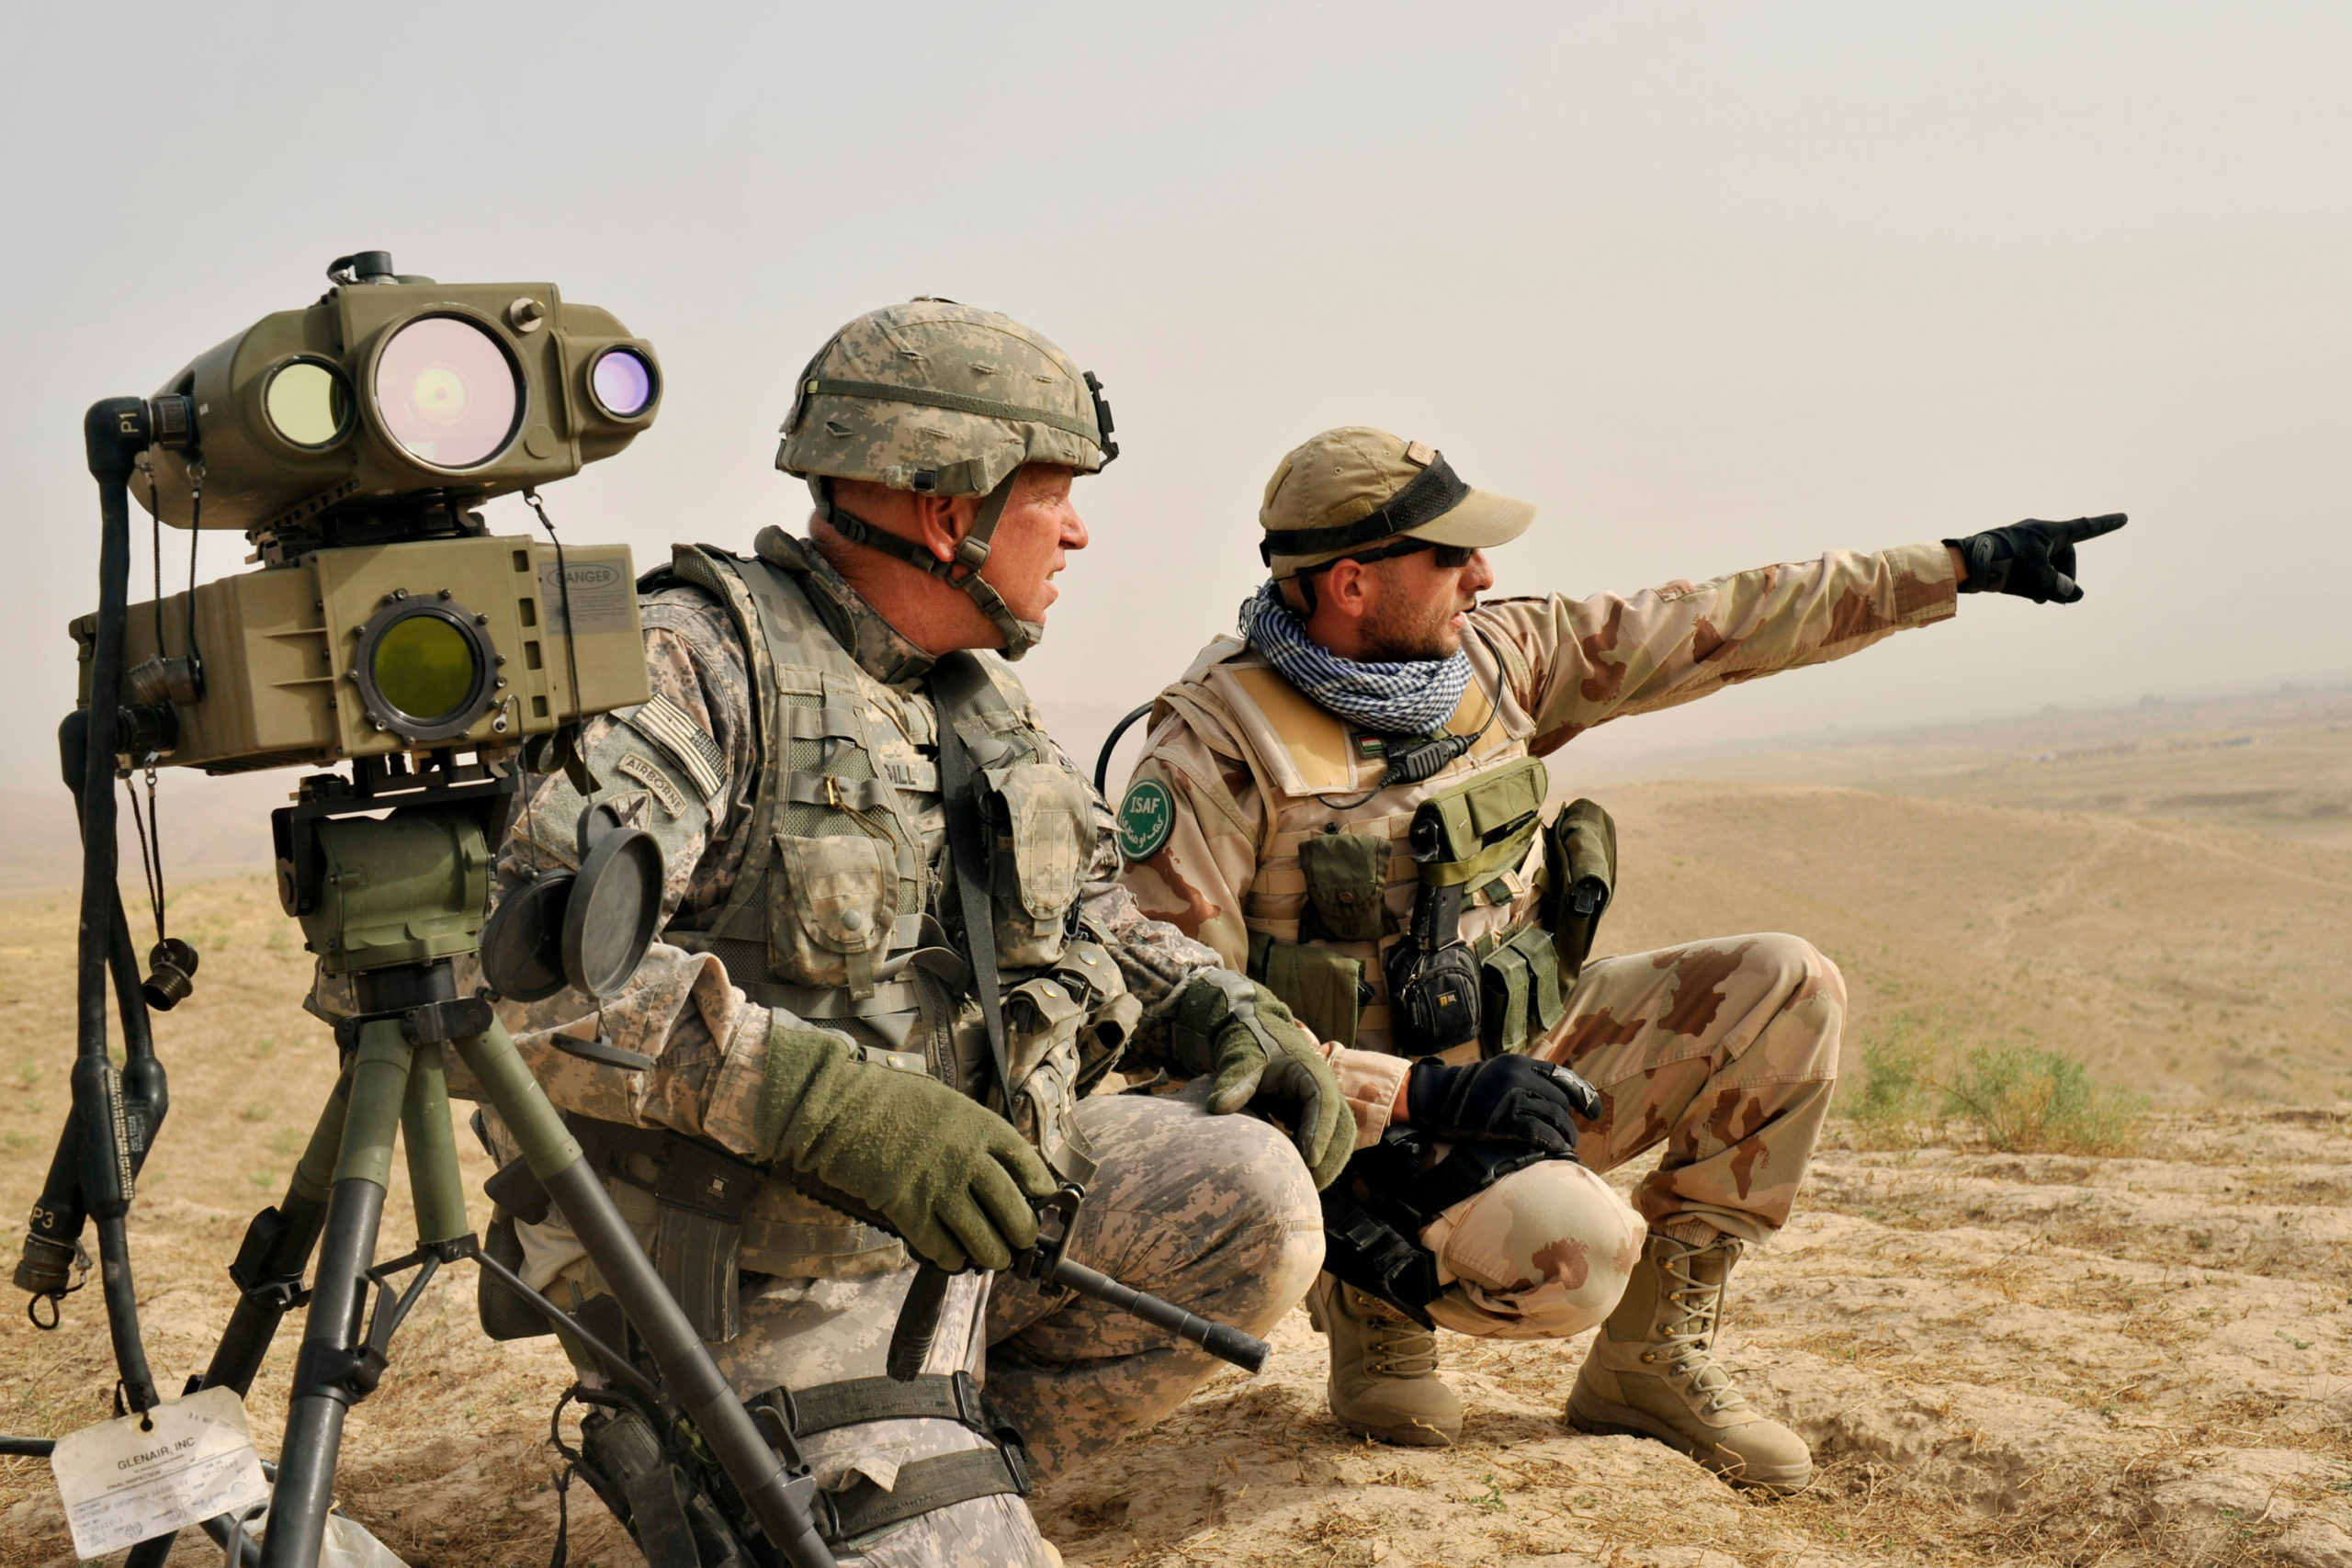 1st Sgt David Gill from Alliance, Oh of the OMLT Team Orthos from 1-145AR RGT, left, and Hungarian military adviser SFC Otto Szatmari, right, look at a hill while searching for pro-Taliban fighters near Kuk Cenar, Baghlan province of northern Afghanistan, Wednesday, July 8, 2009.